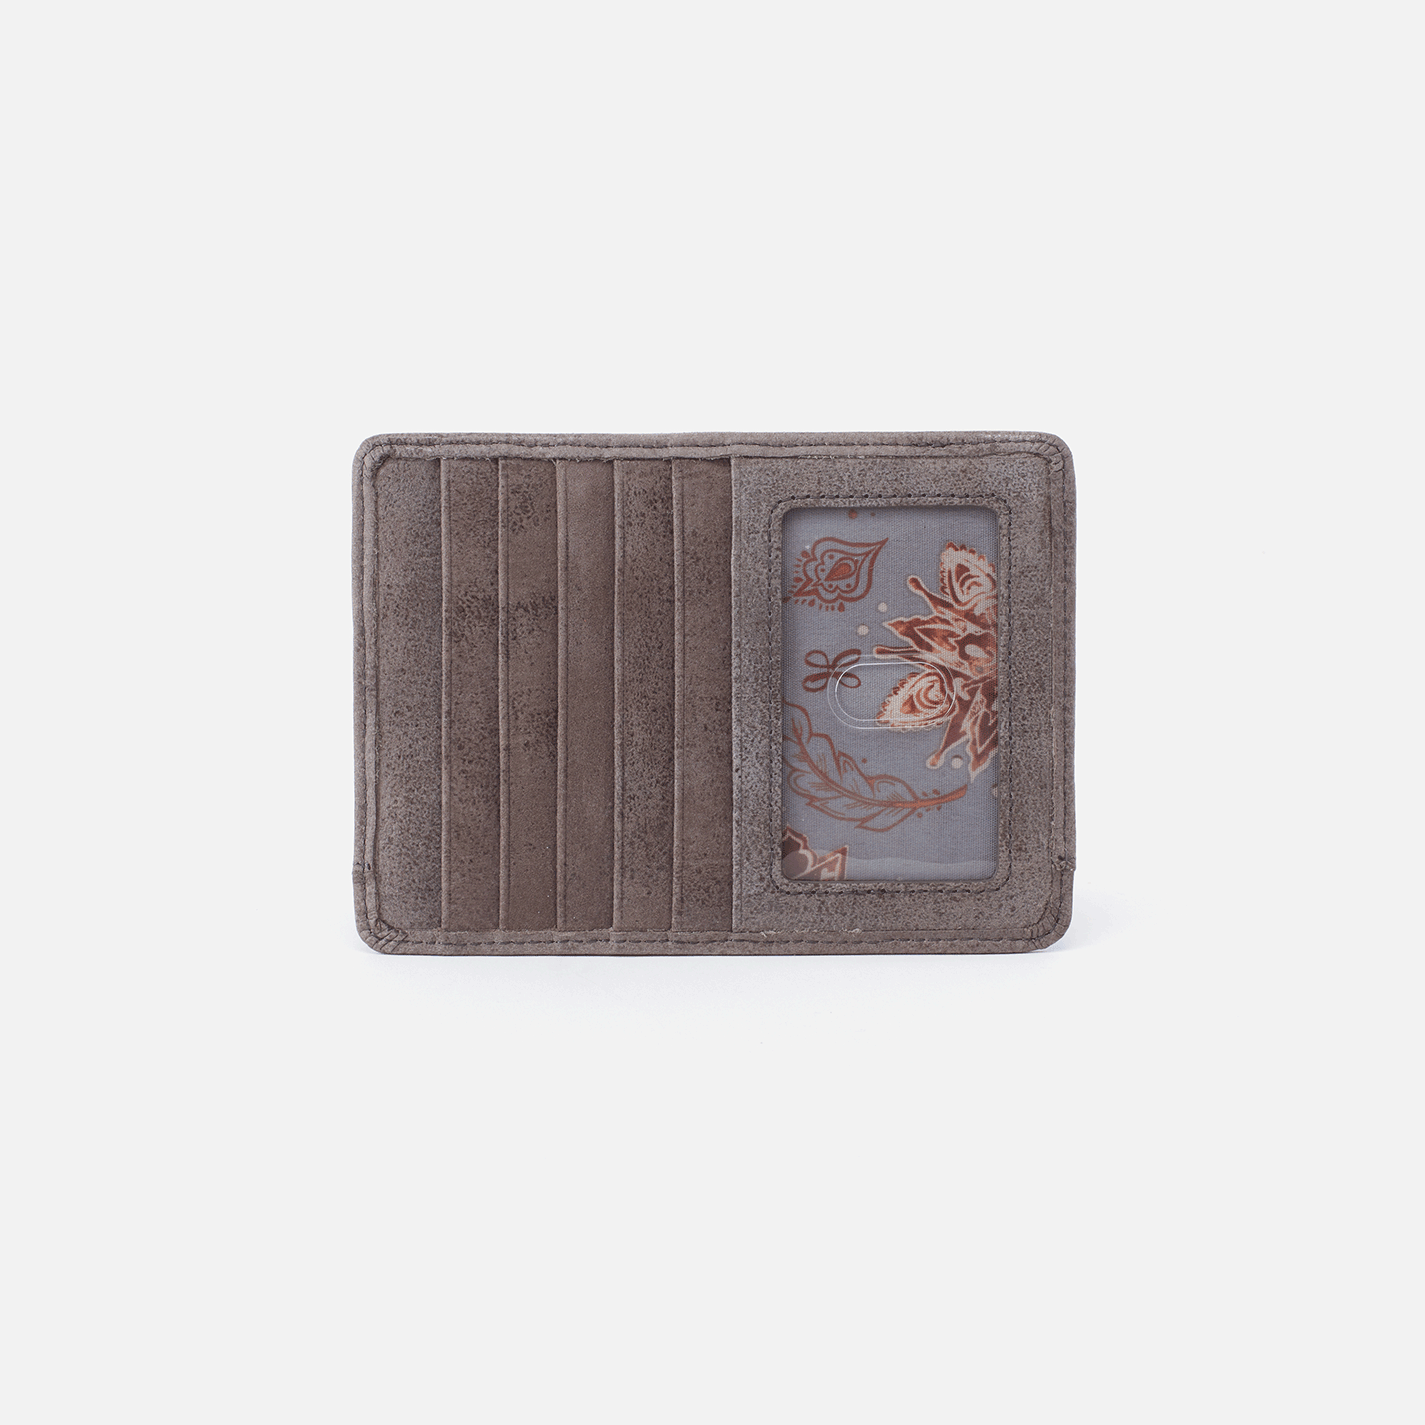 Hobo - Euro Credit Card Wallet